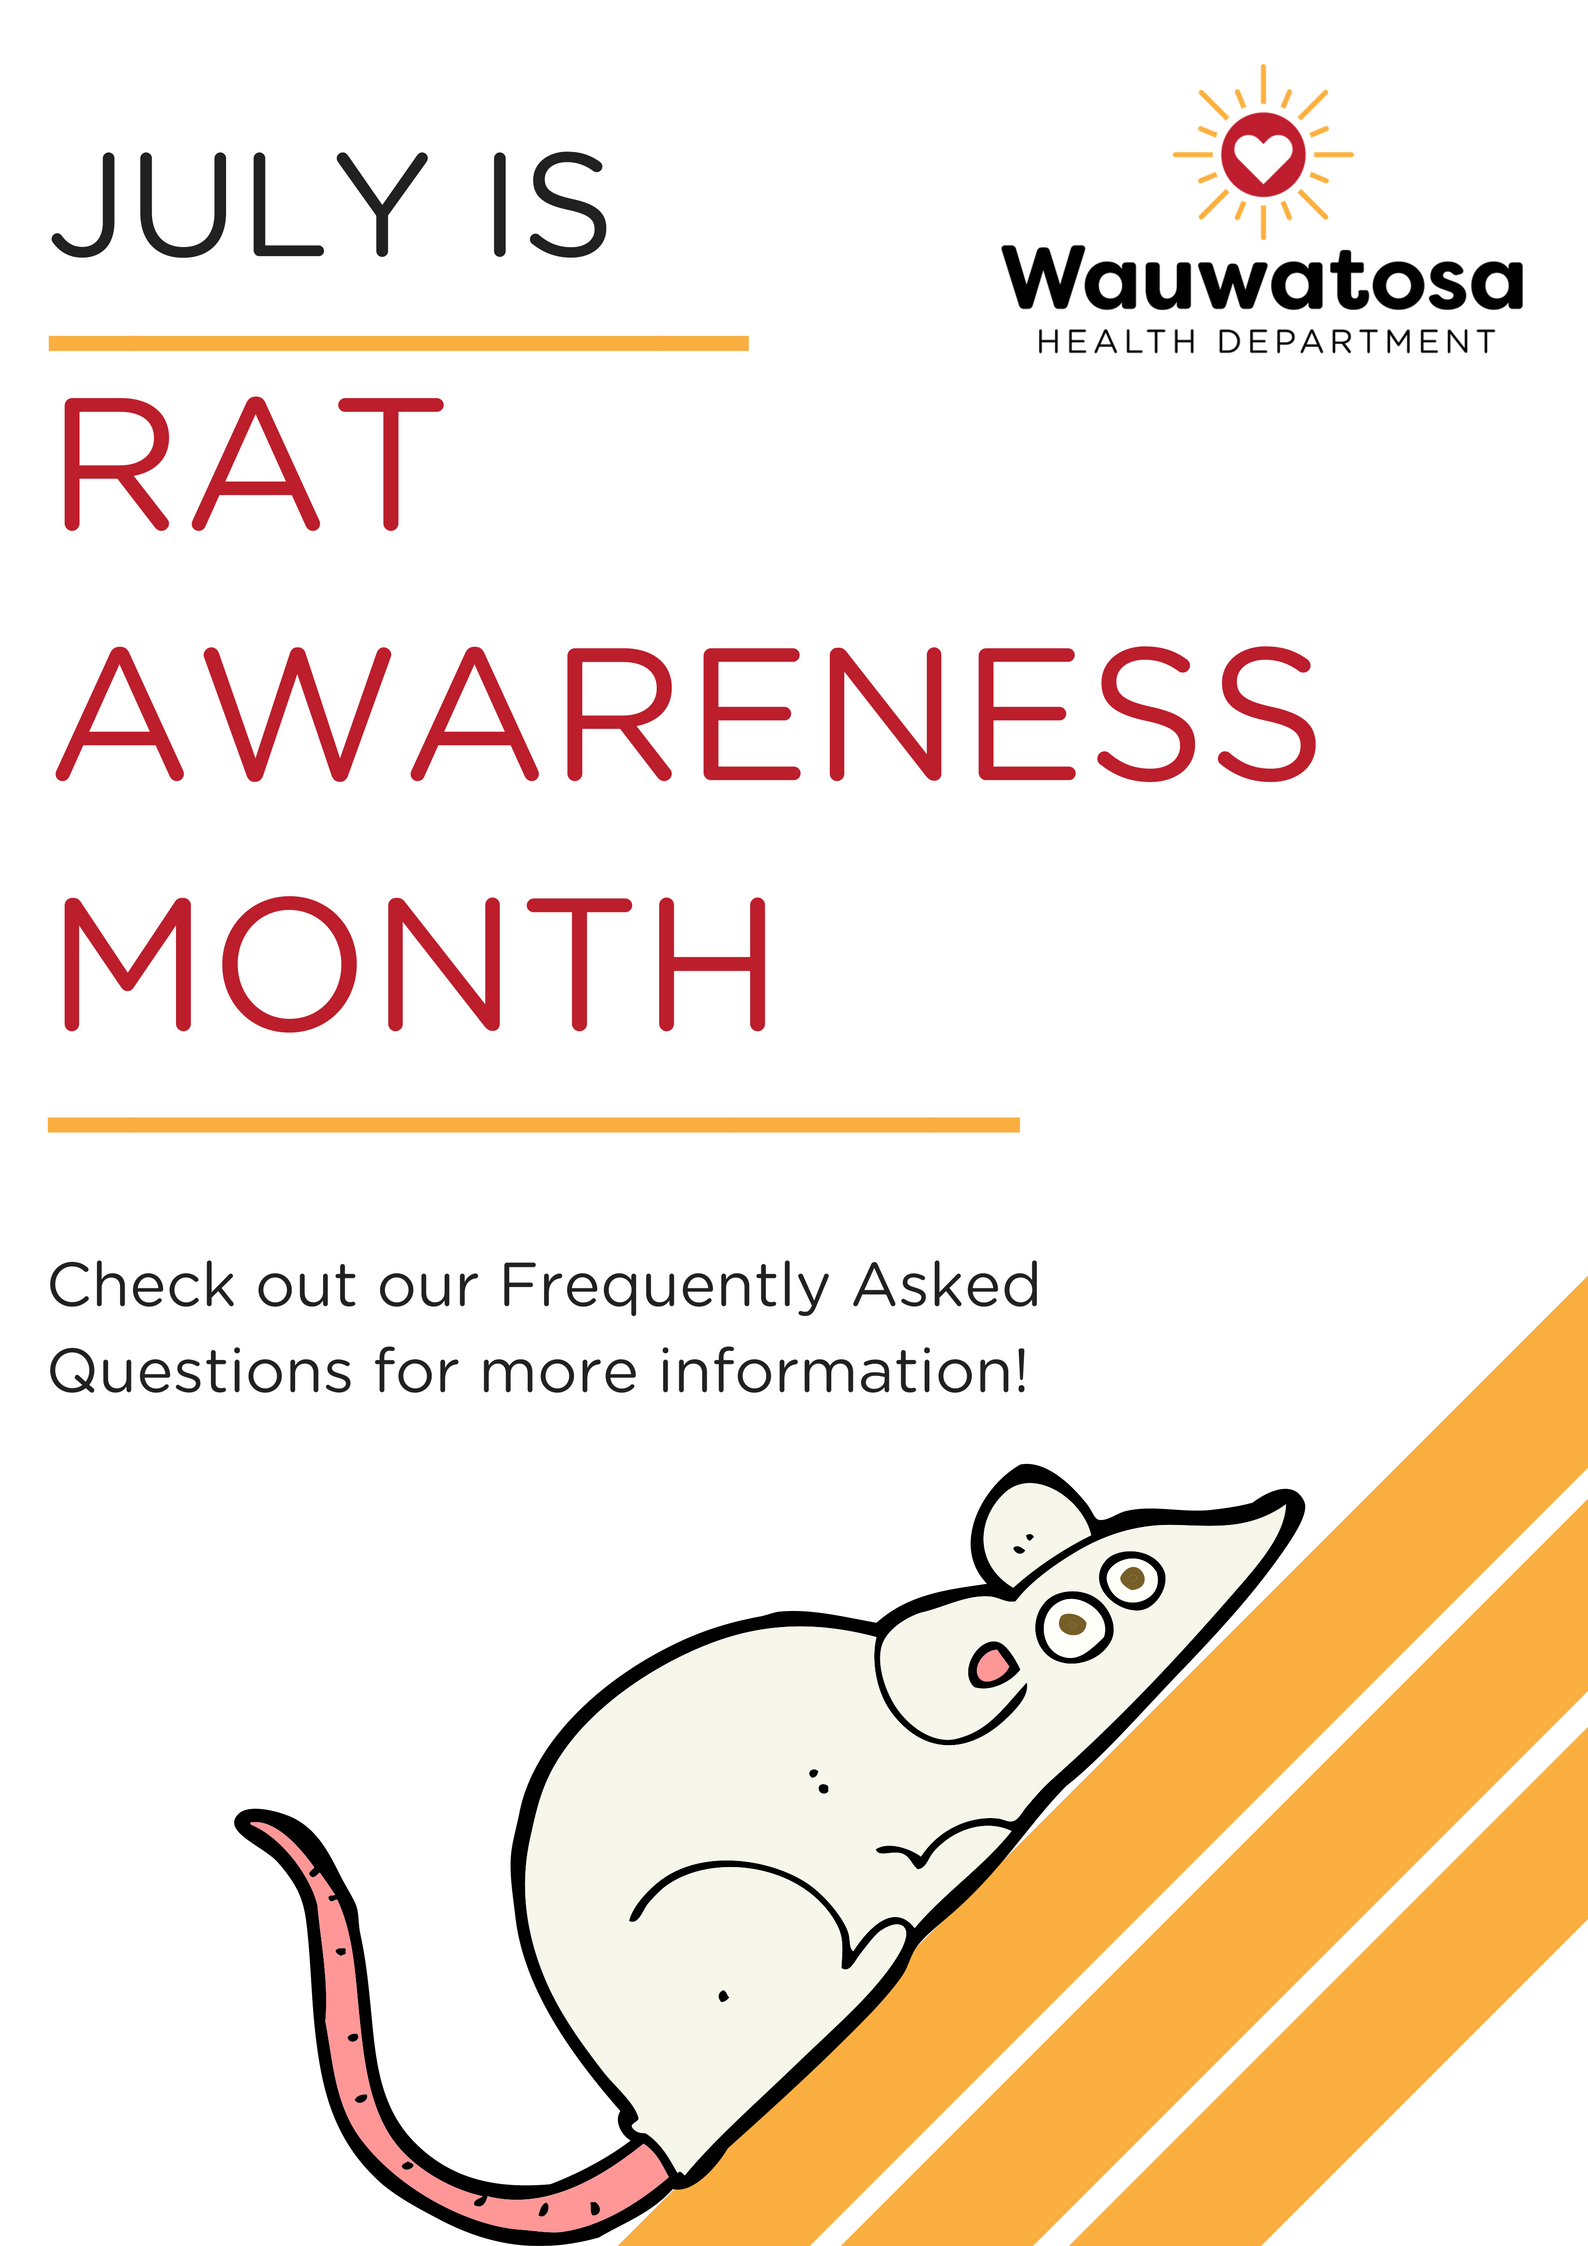 How to prevent rats this summer | Health News | Wauwatosa, WI